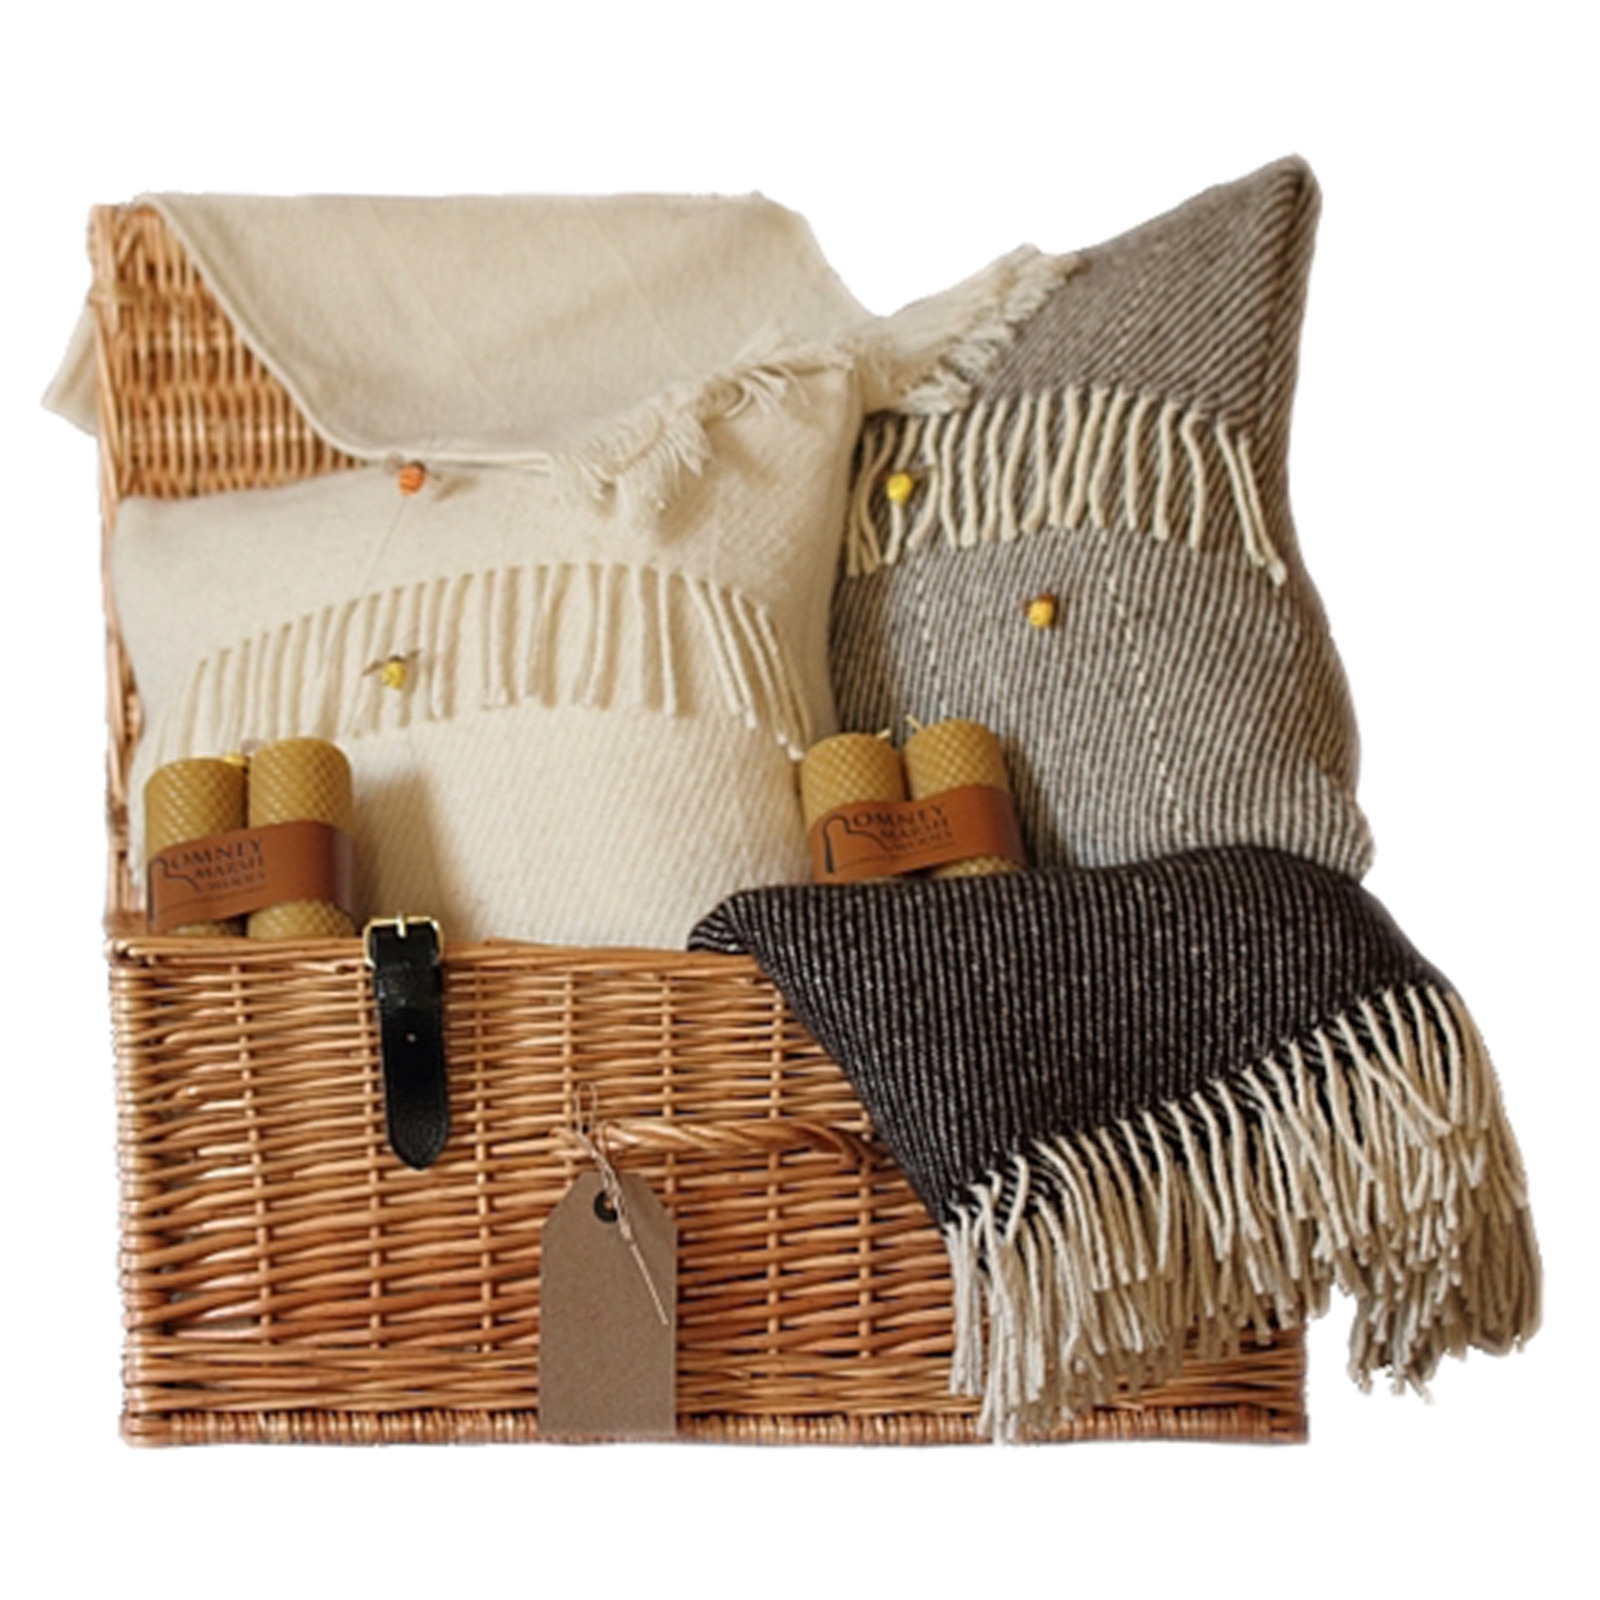 Romney Marsh Wedding Hamper